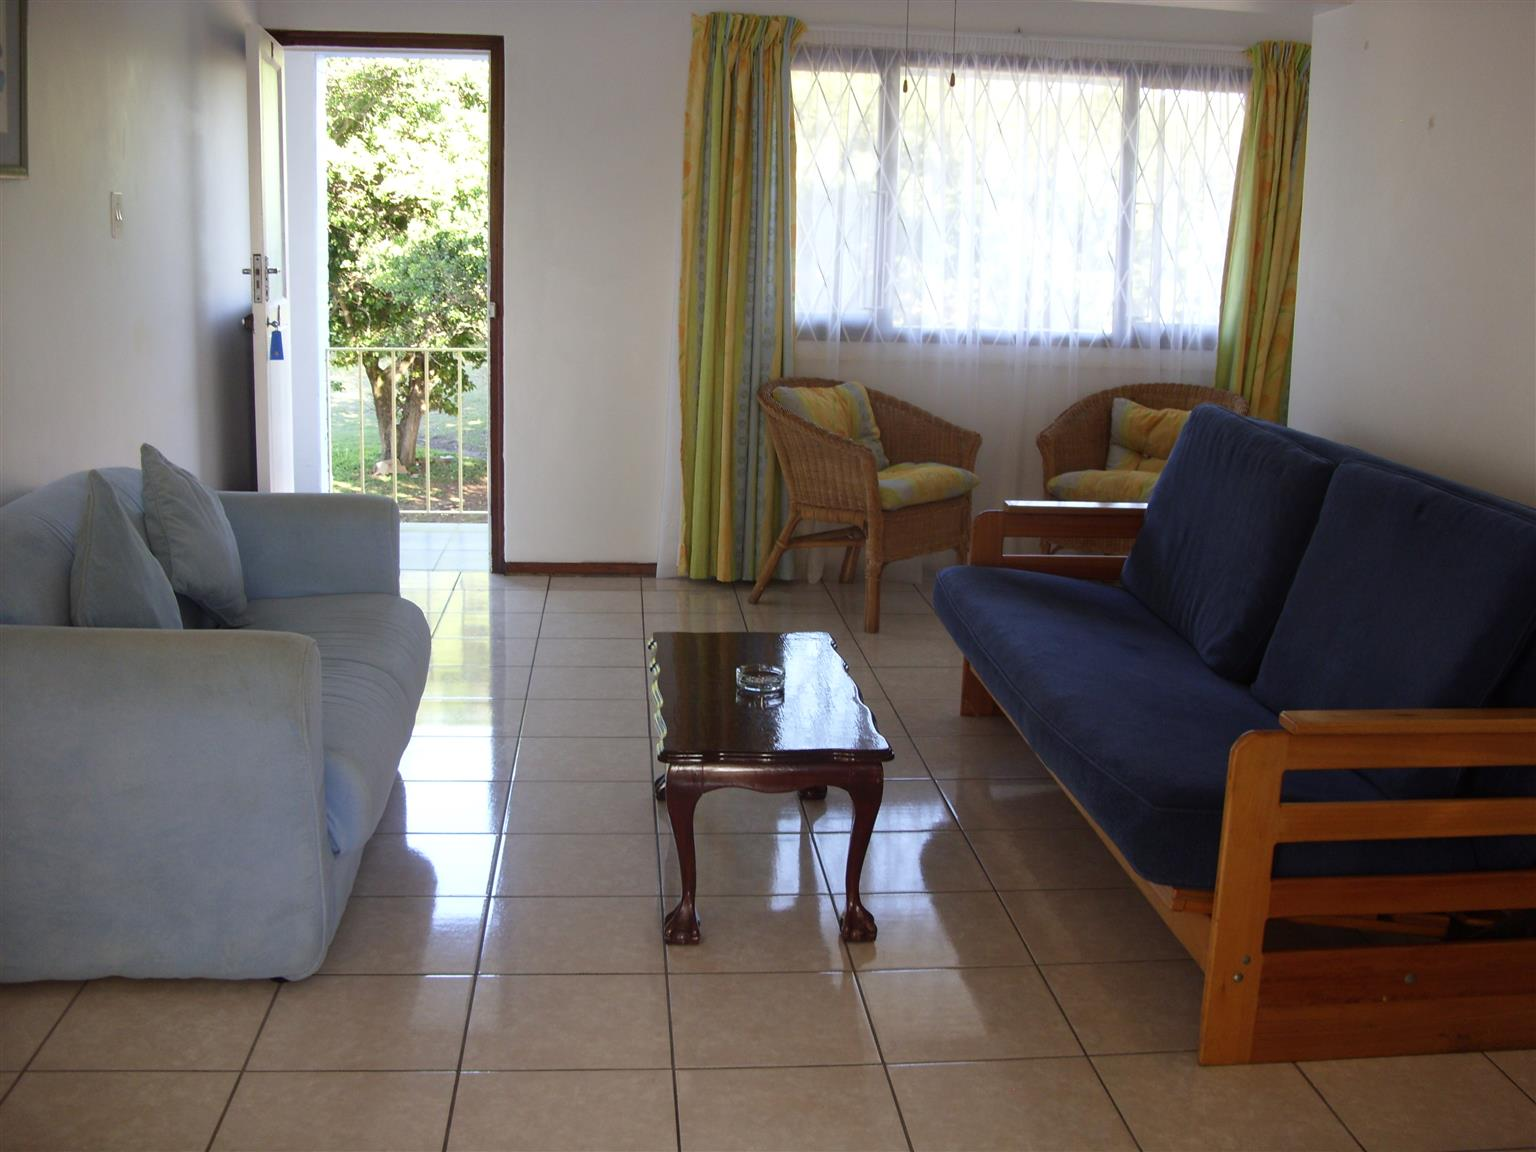 SHELLY BEACH – 4 SLEEPER SELF-CATERING HOLIDAY FLATS UVONGO FROM R200 PPPN FOR 2